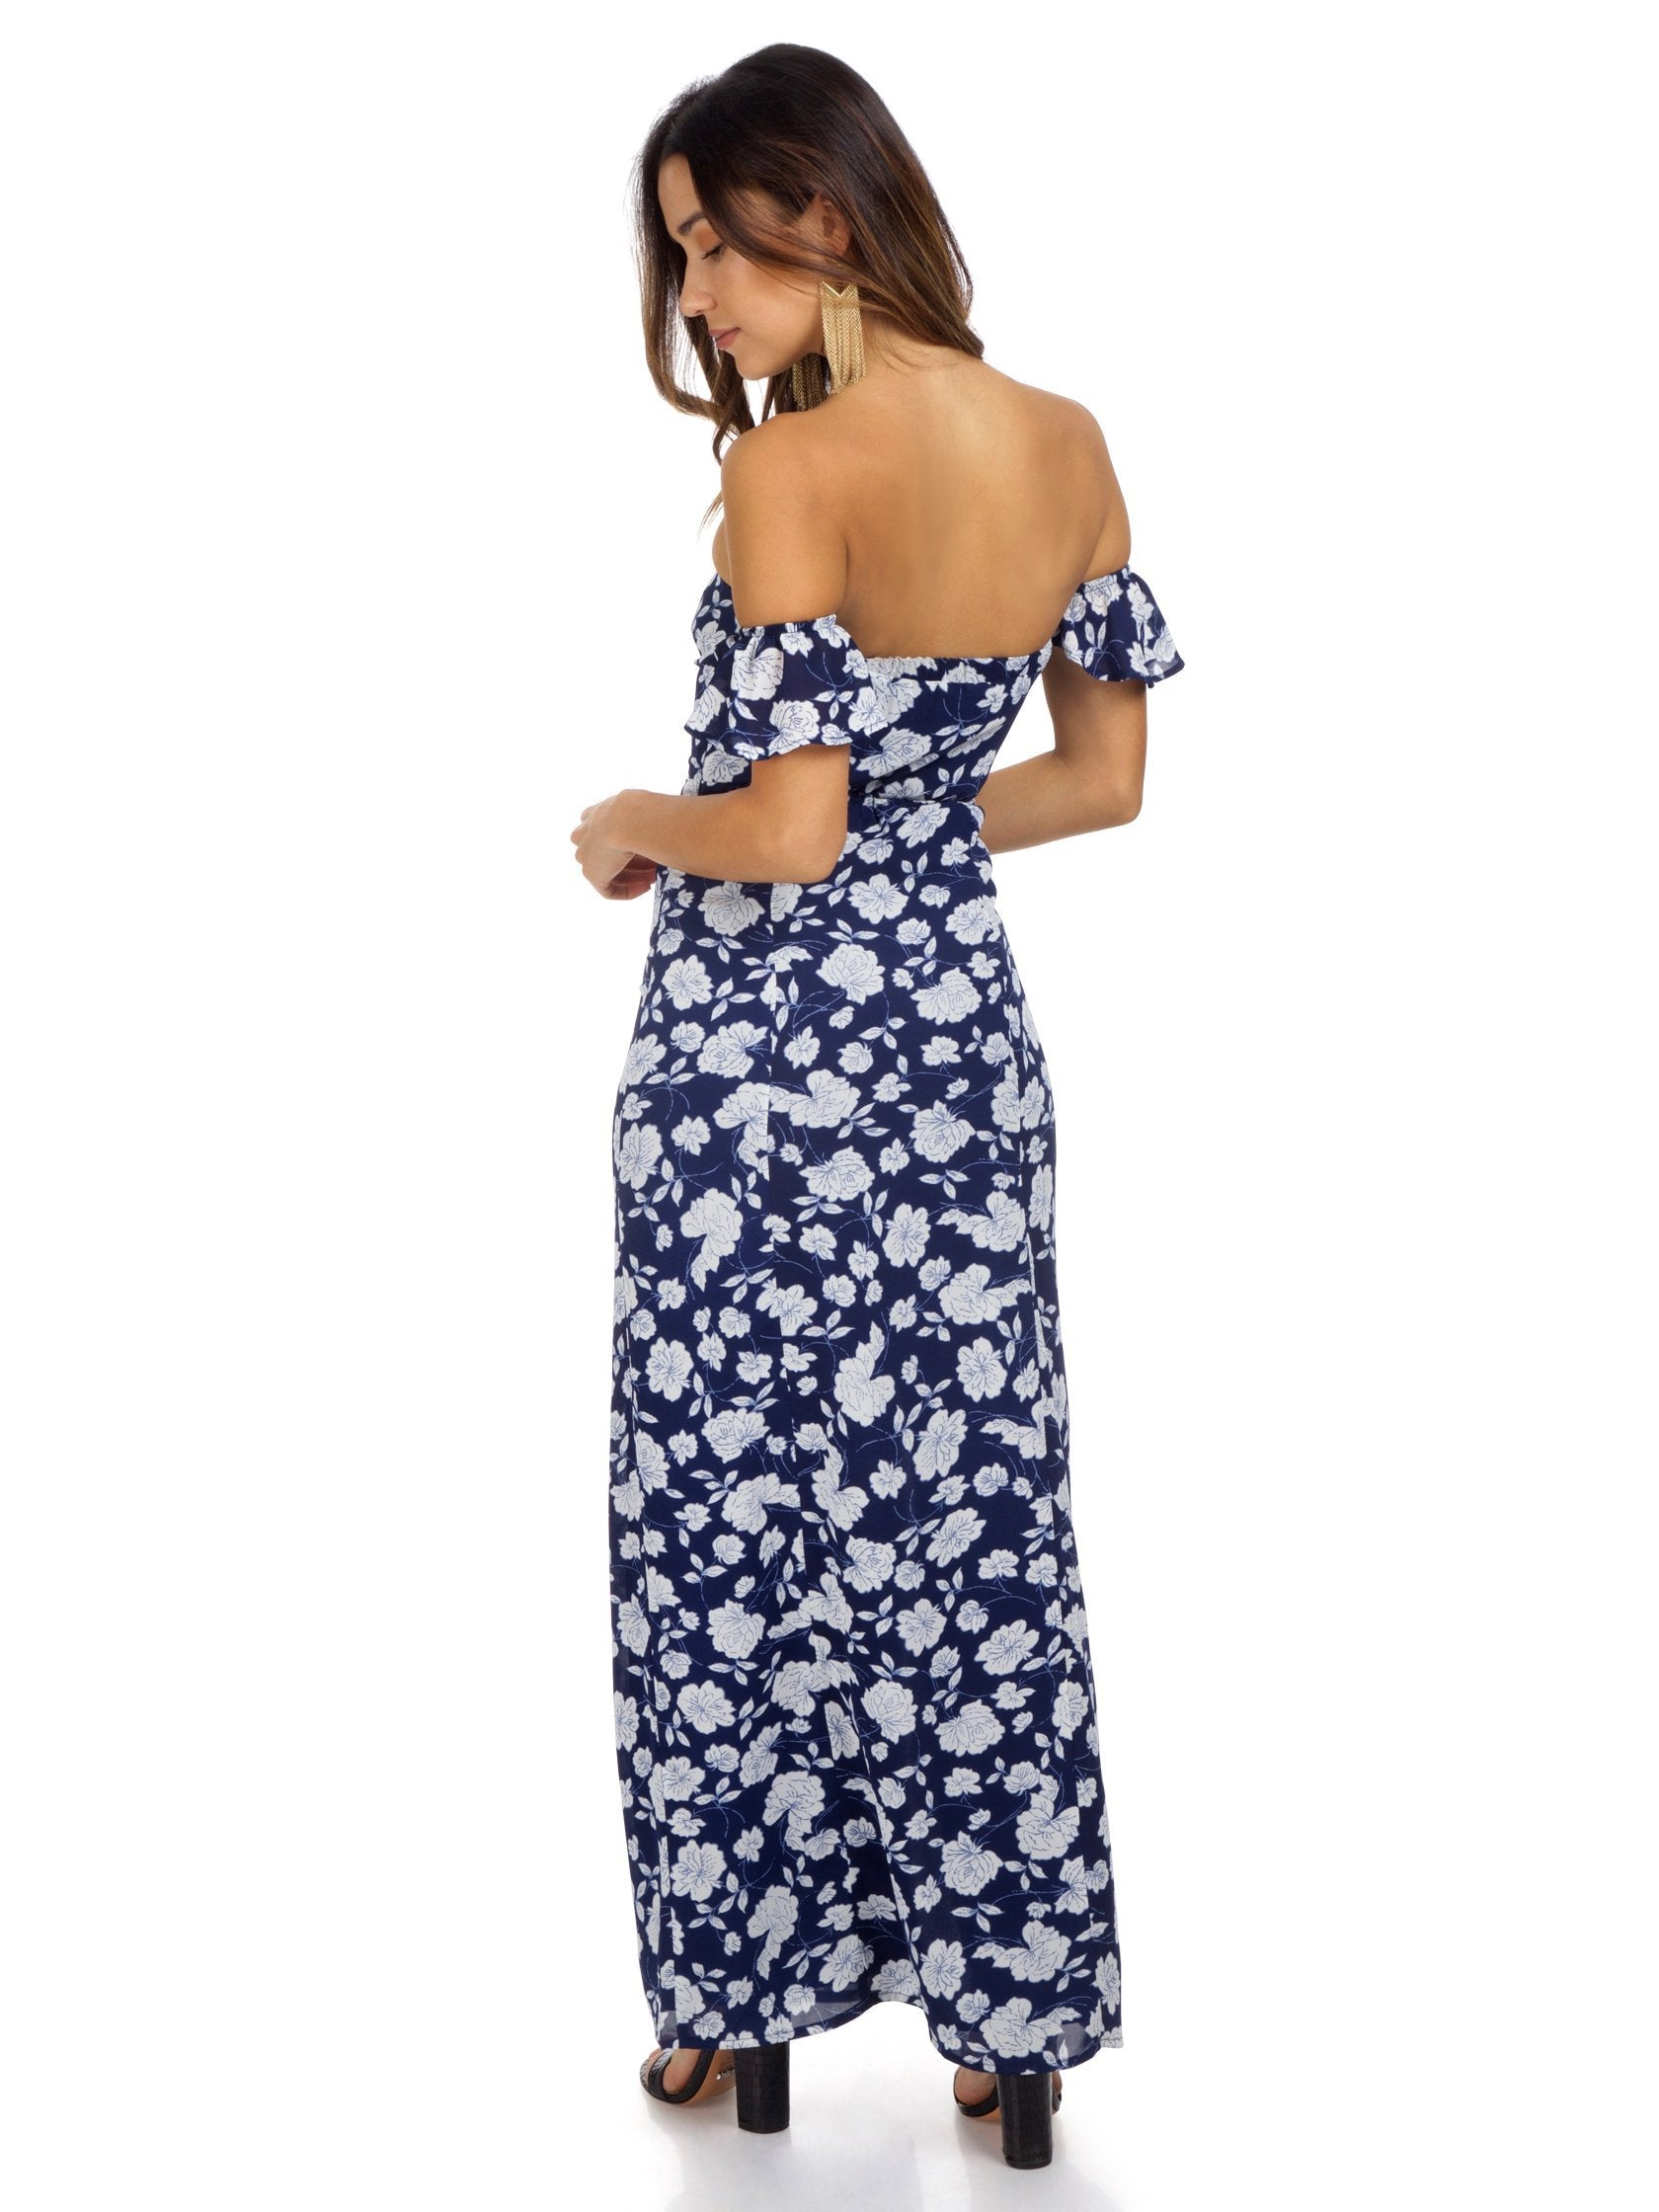 Women wearing a dress rental from Lucca Couture called Off Shoulder Maxi Dress